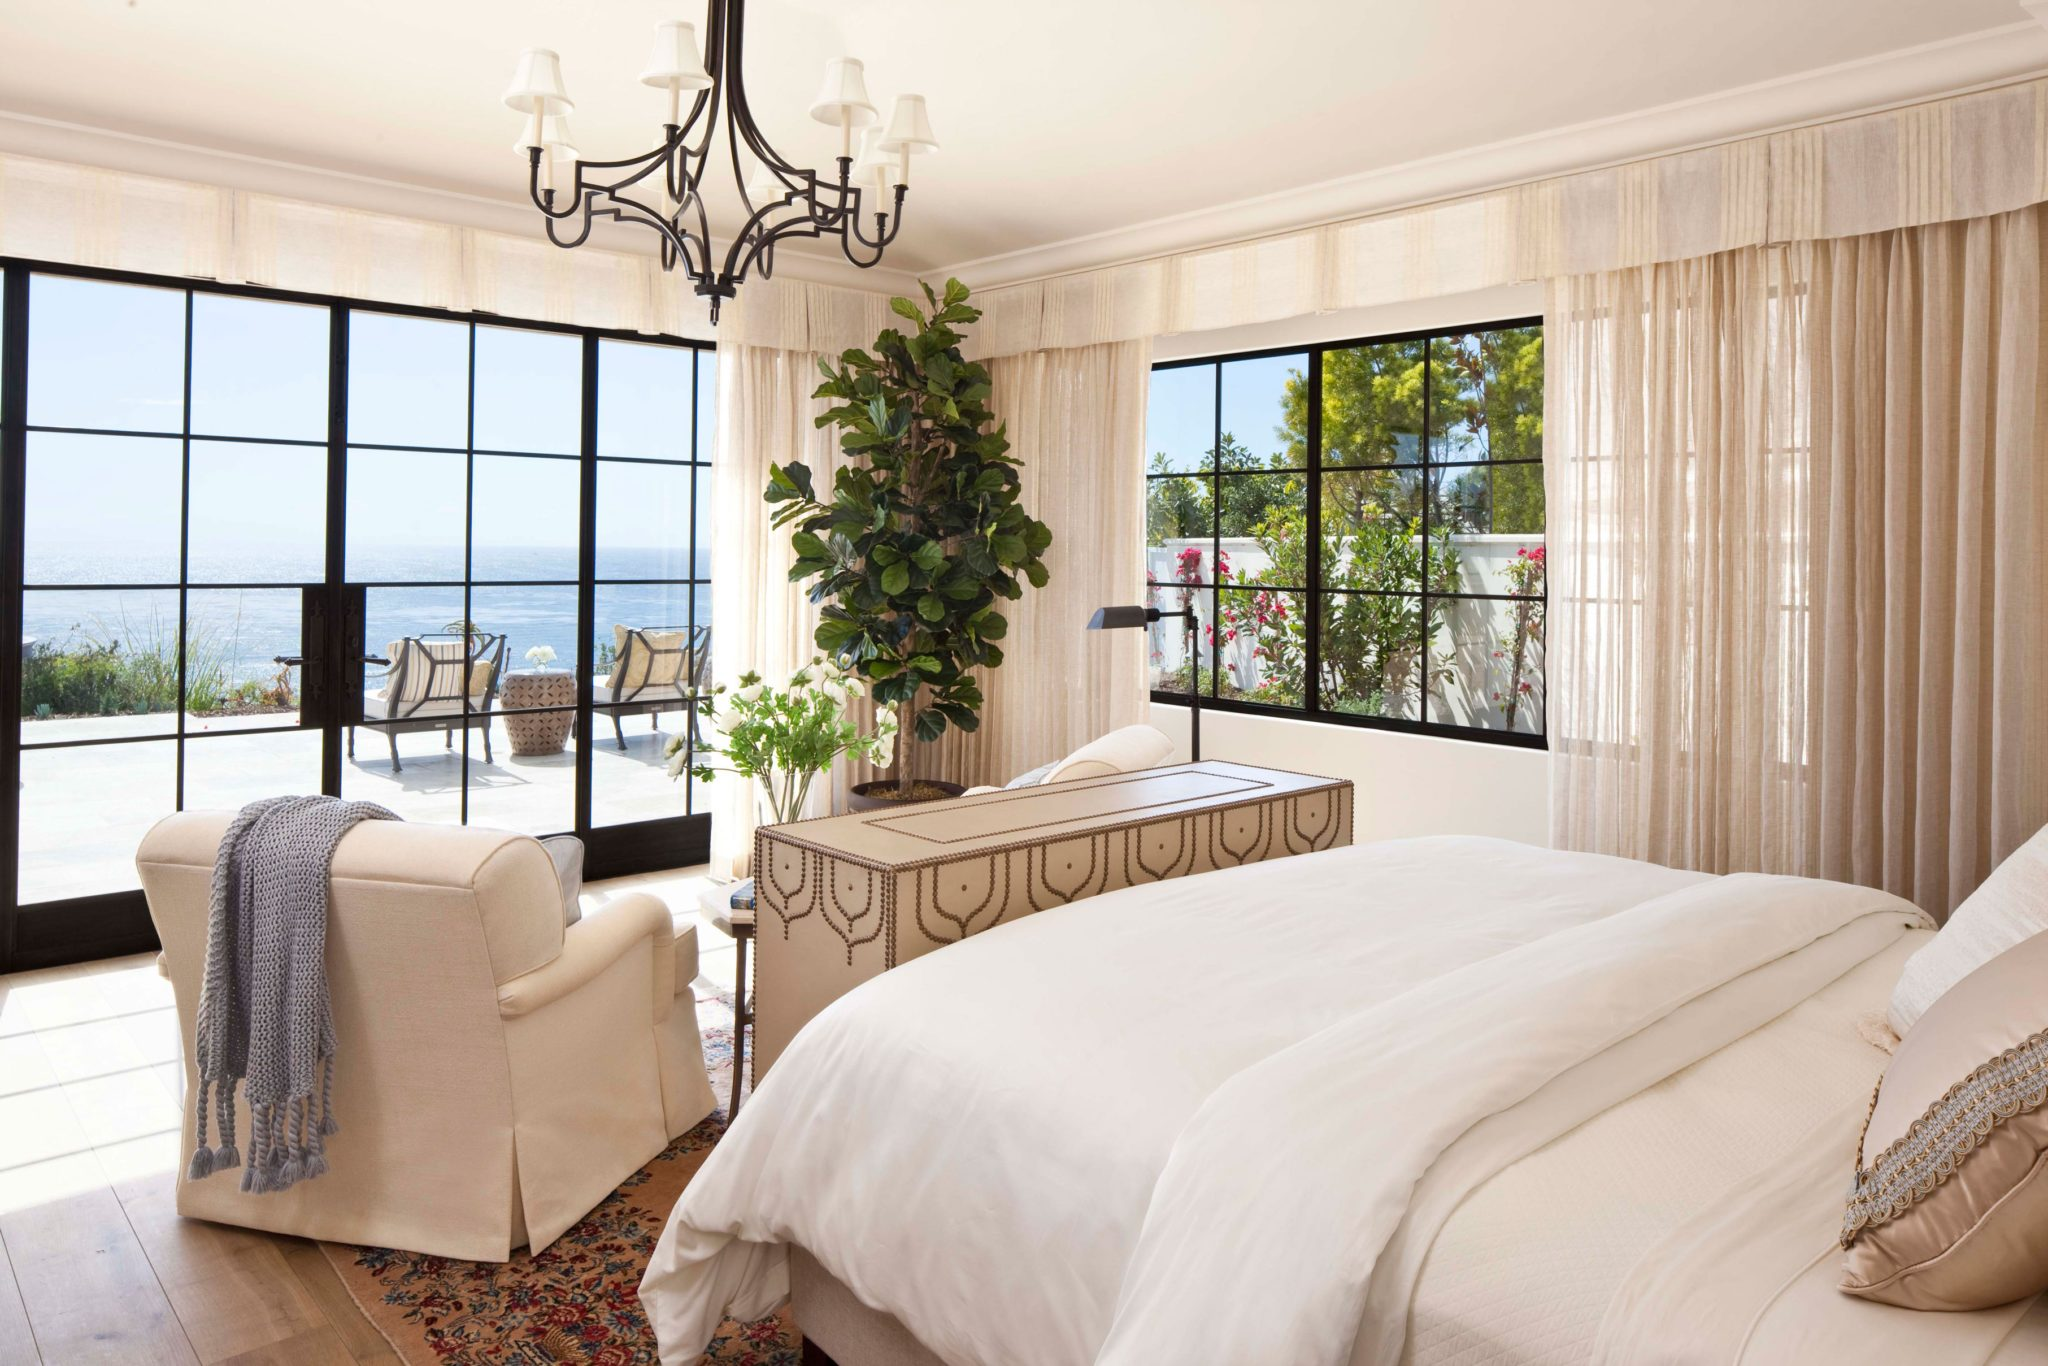 Private residence master bedroom - Dana Point, California, by SFA Design